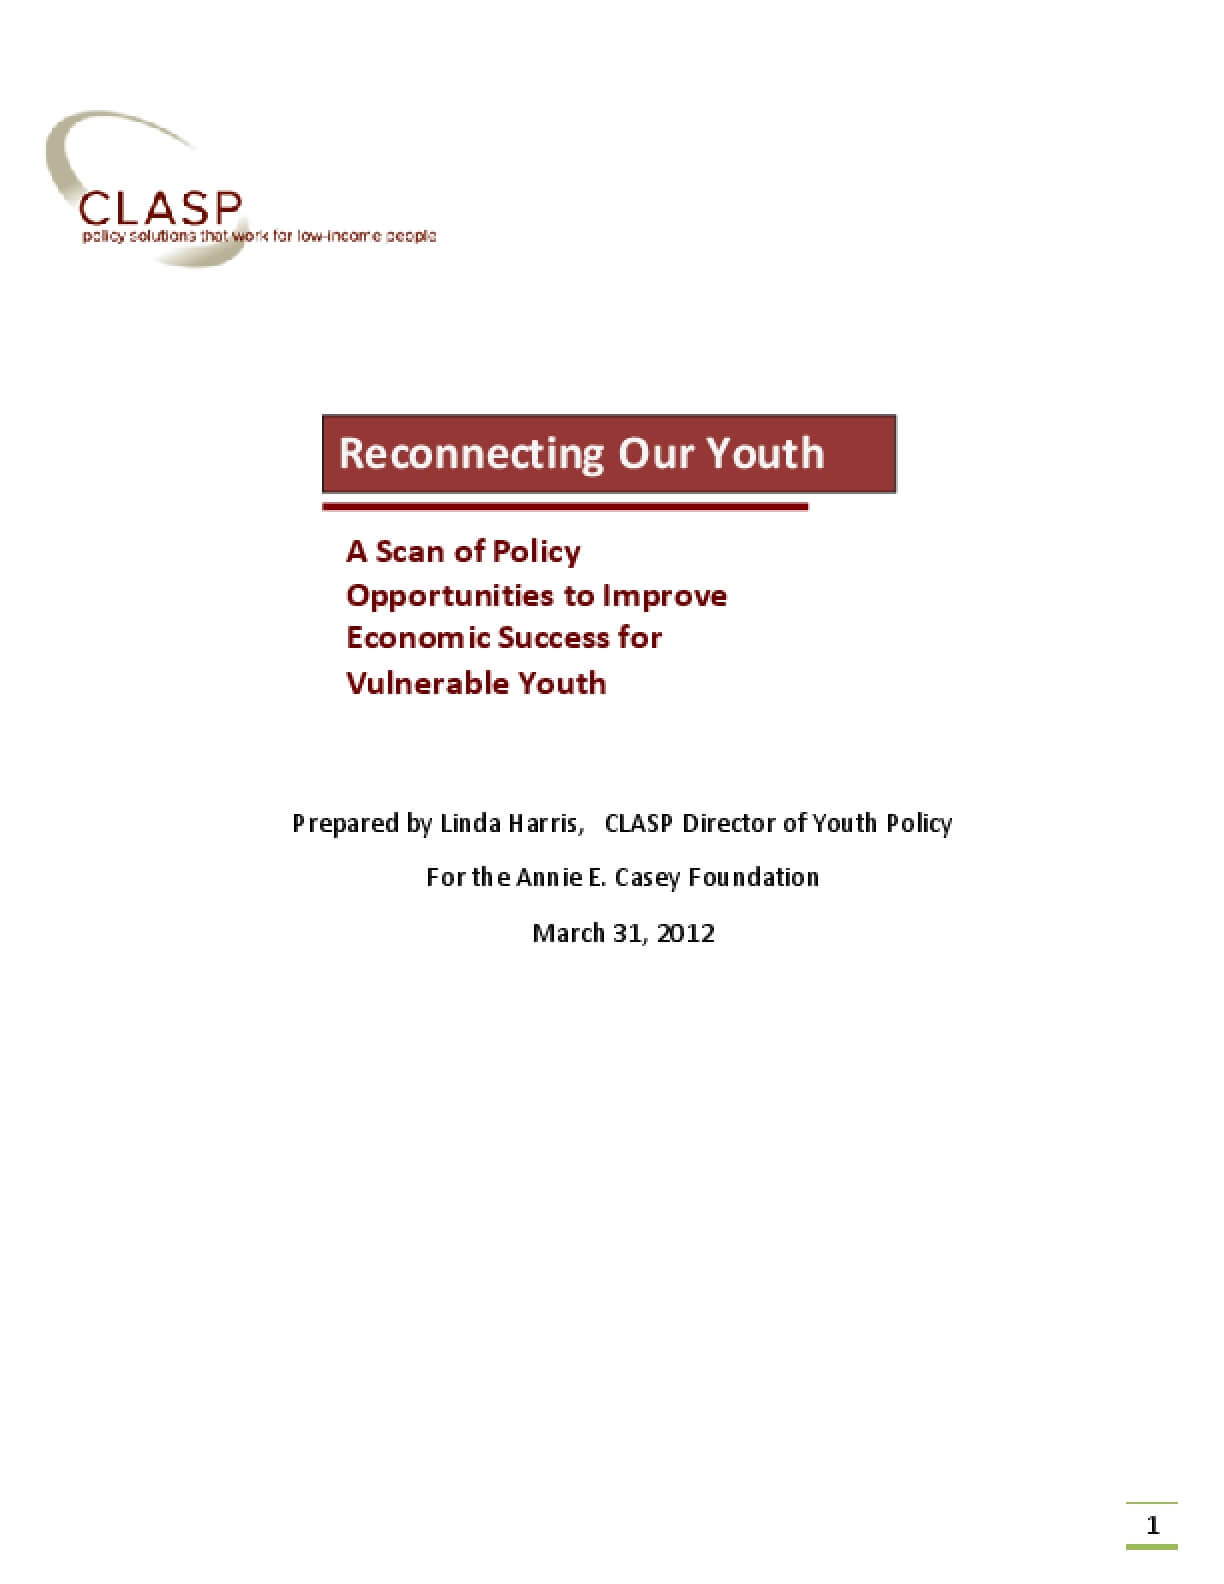 Reconnecting Our Youth, a Scan of Policy Opportunities to Improve Economic Success for Vulnerable Youth